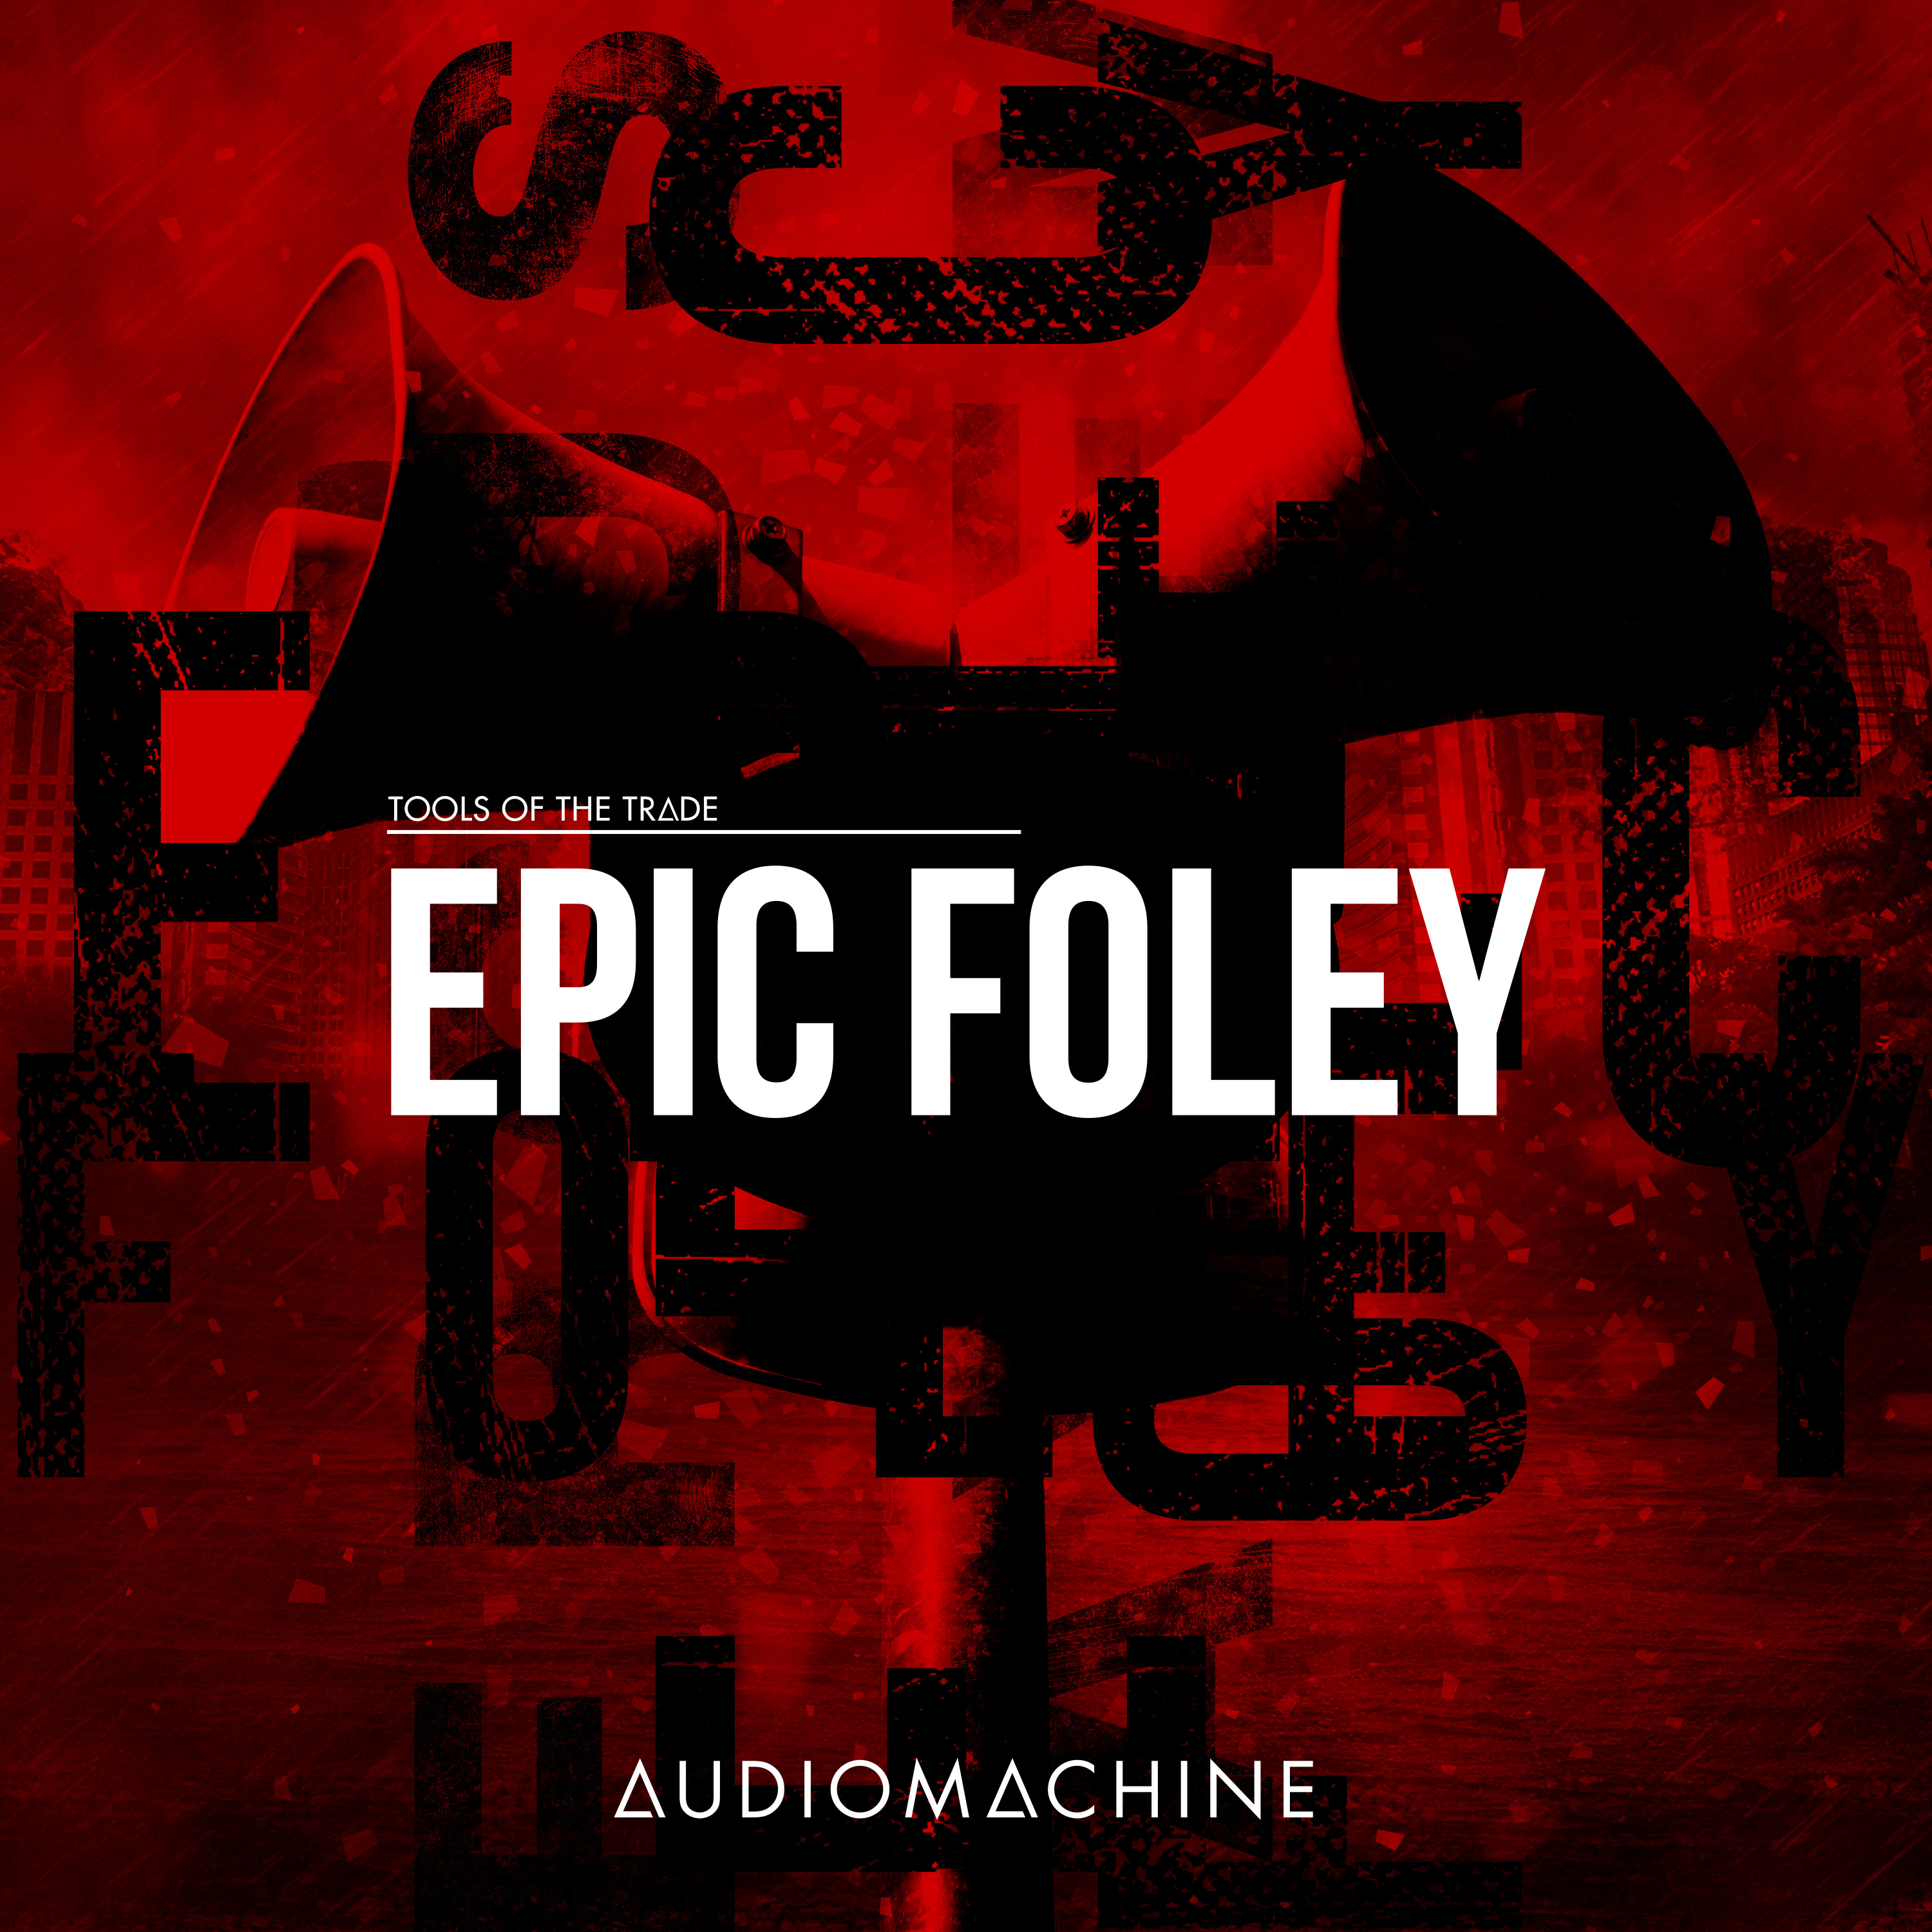 Tools of the Trade: Epic Foley